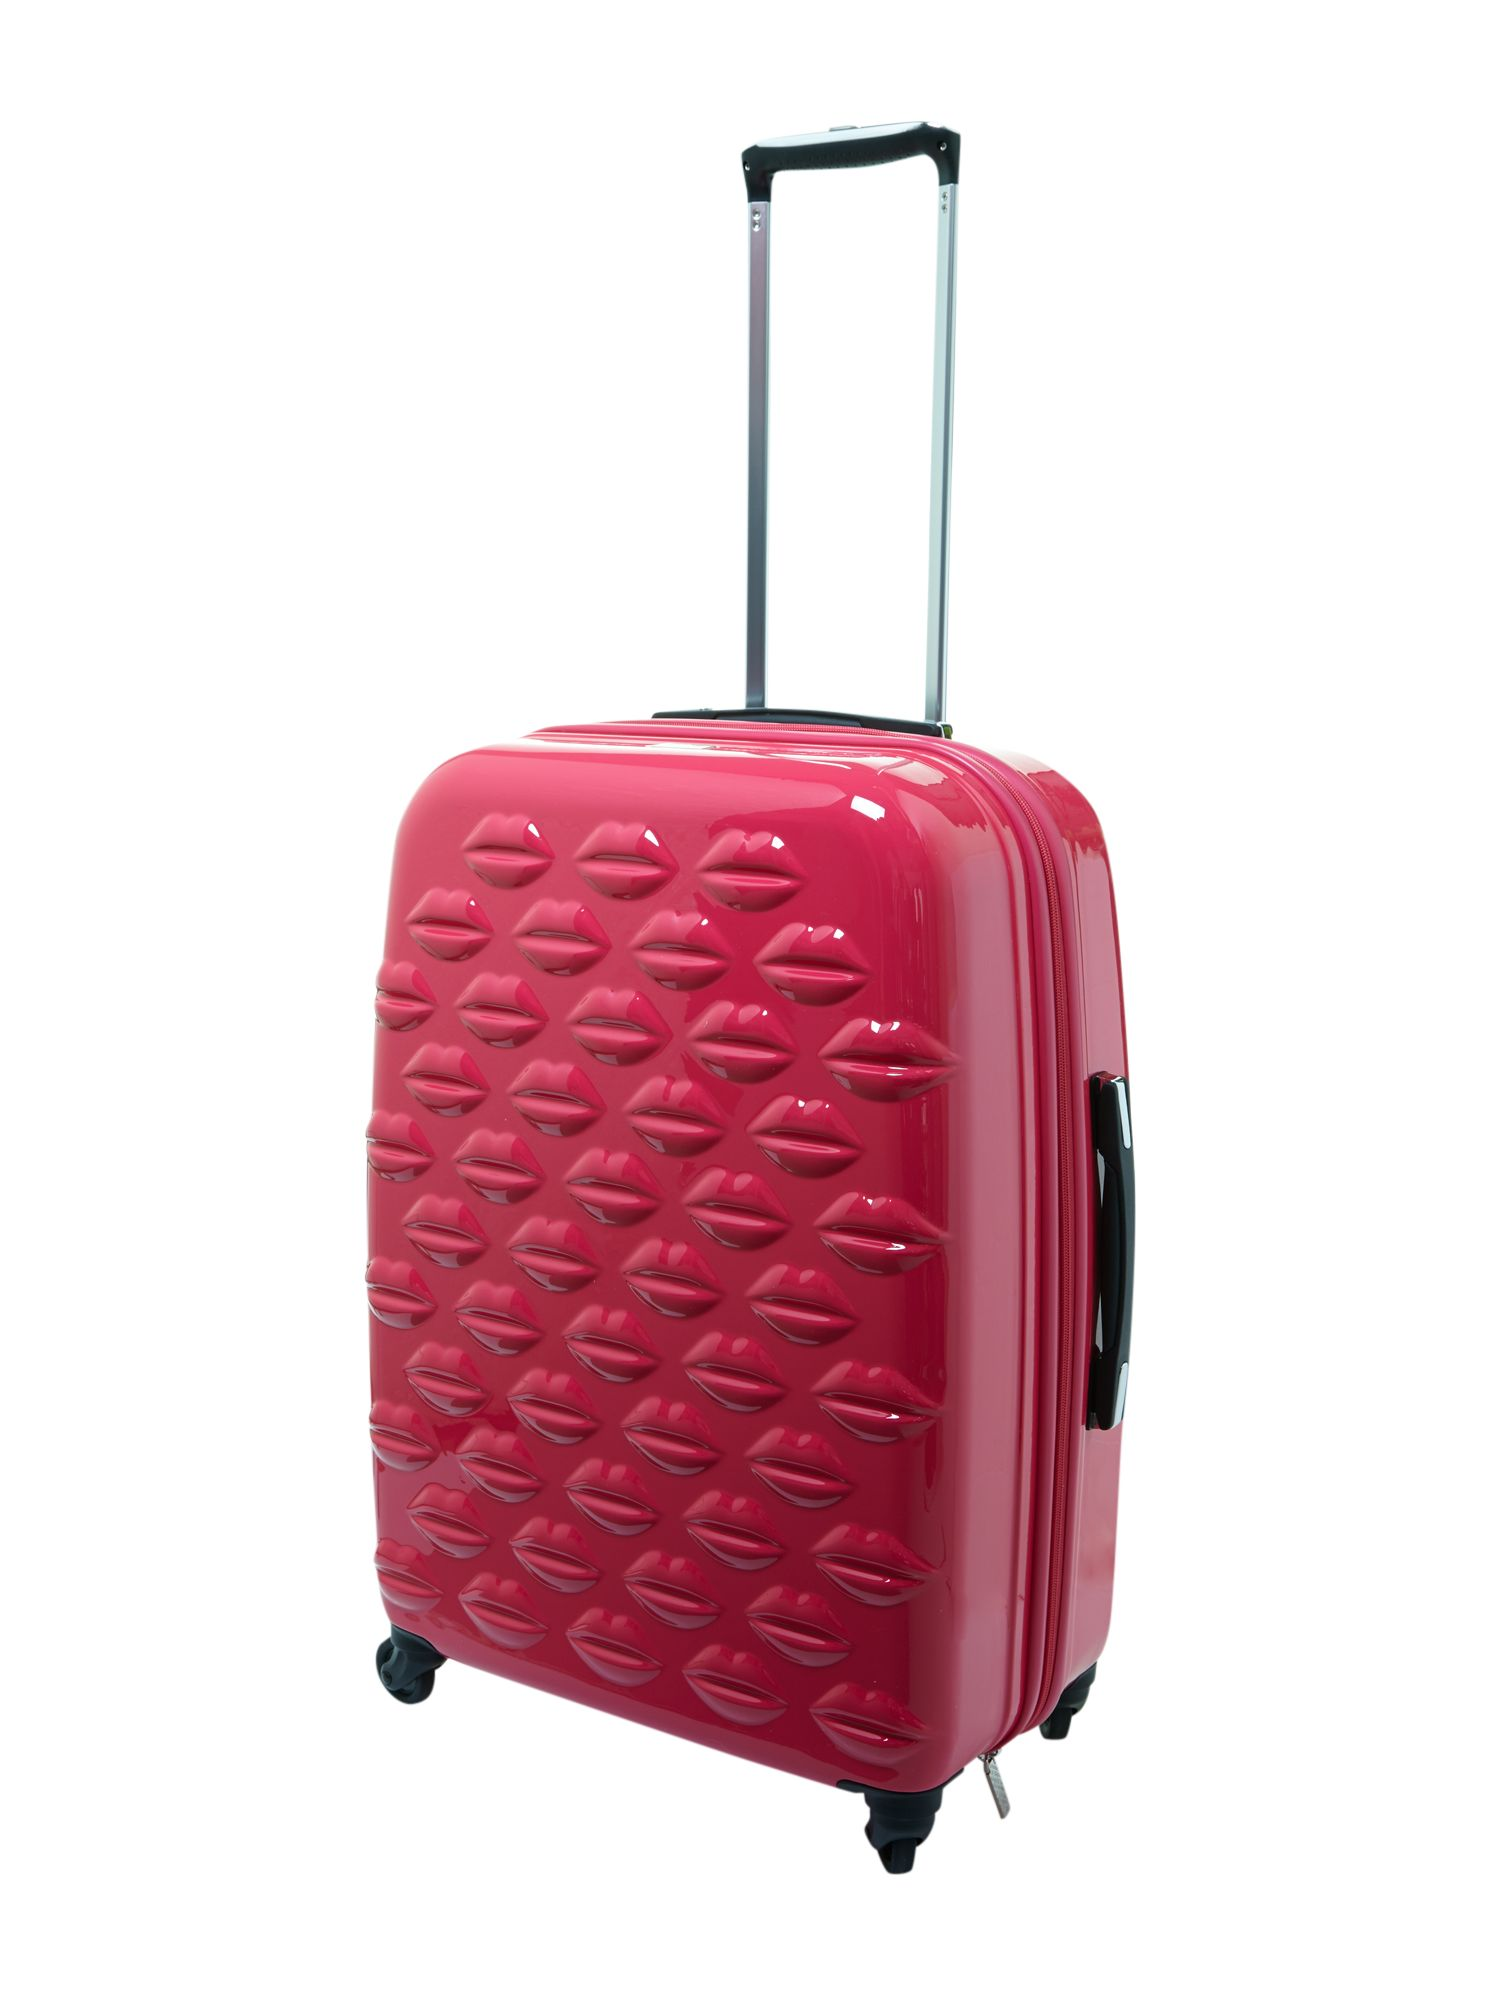 Lulu Lips pink 61cm 4 wheel case light weight